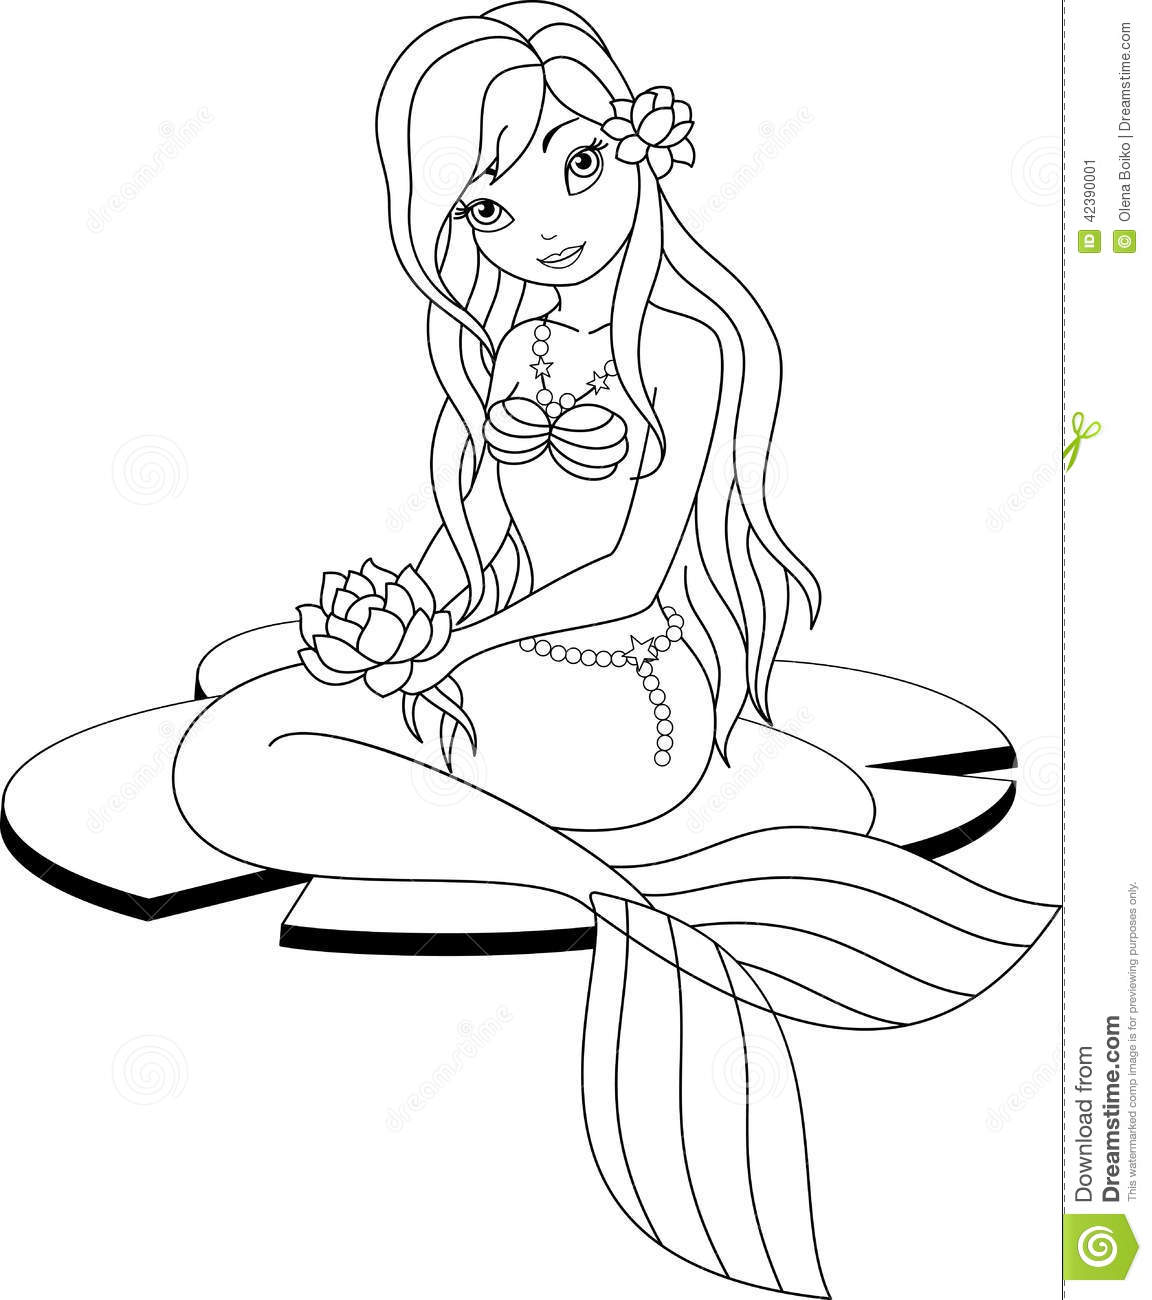 Free bella h2o just add water coloring pages